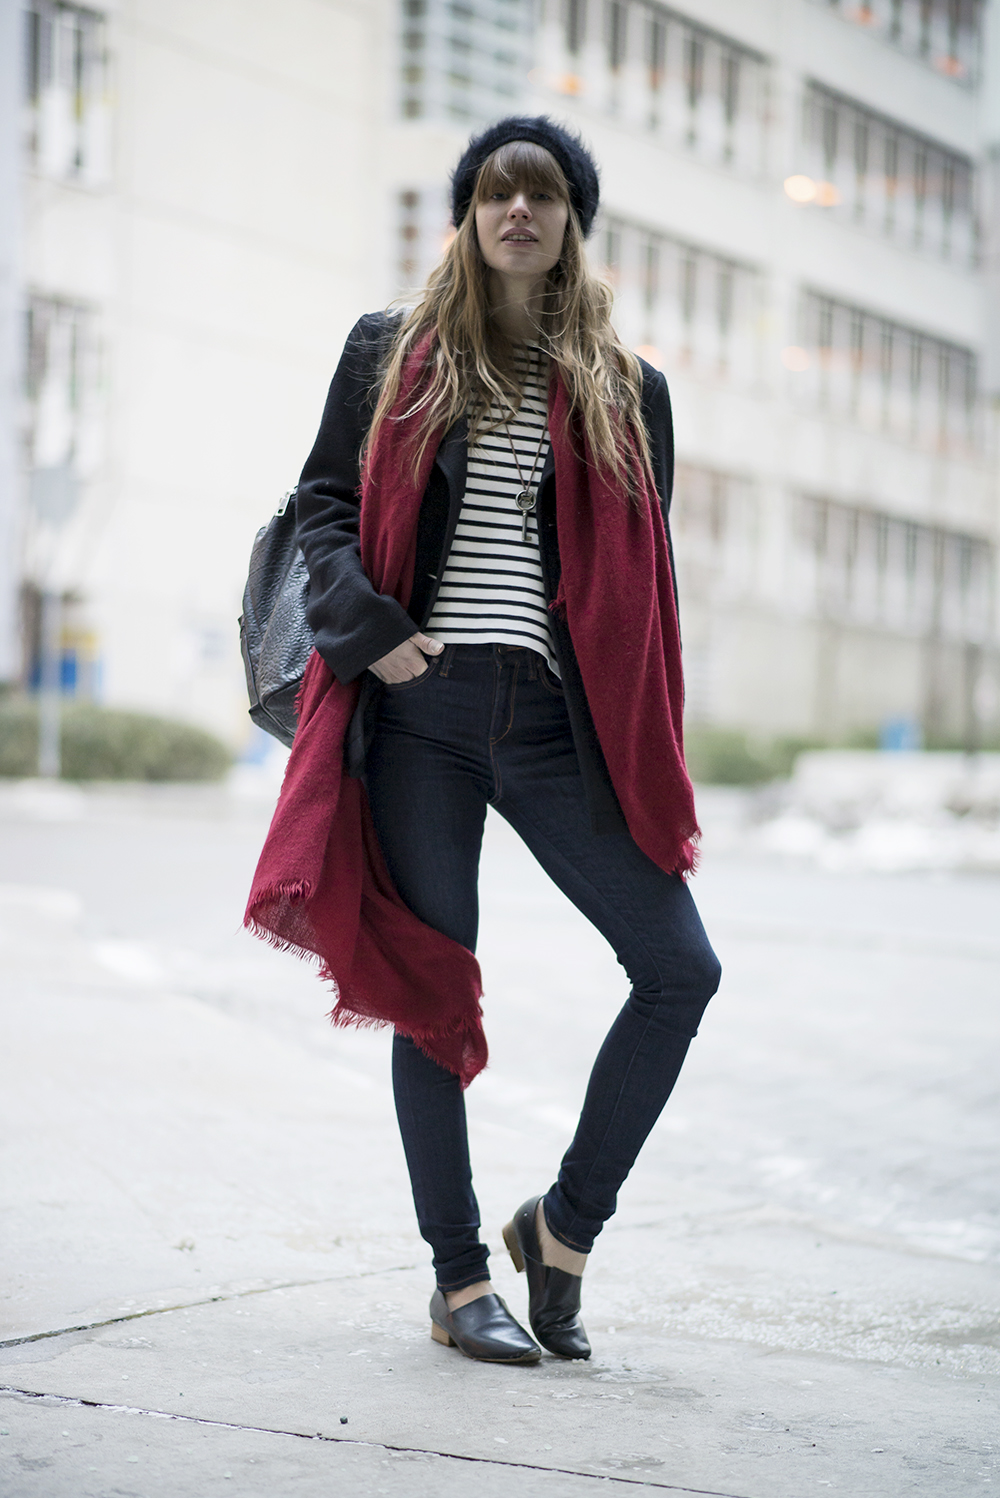 A RED SCARF | Just Another Fashion Blog